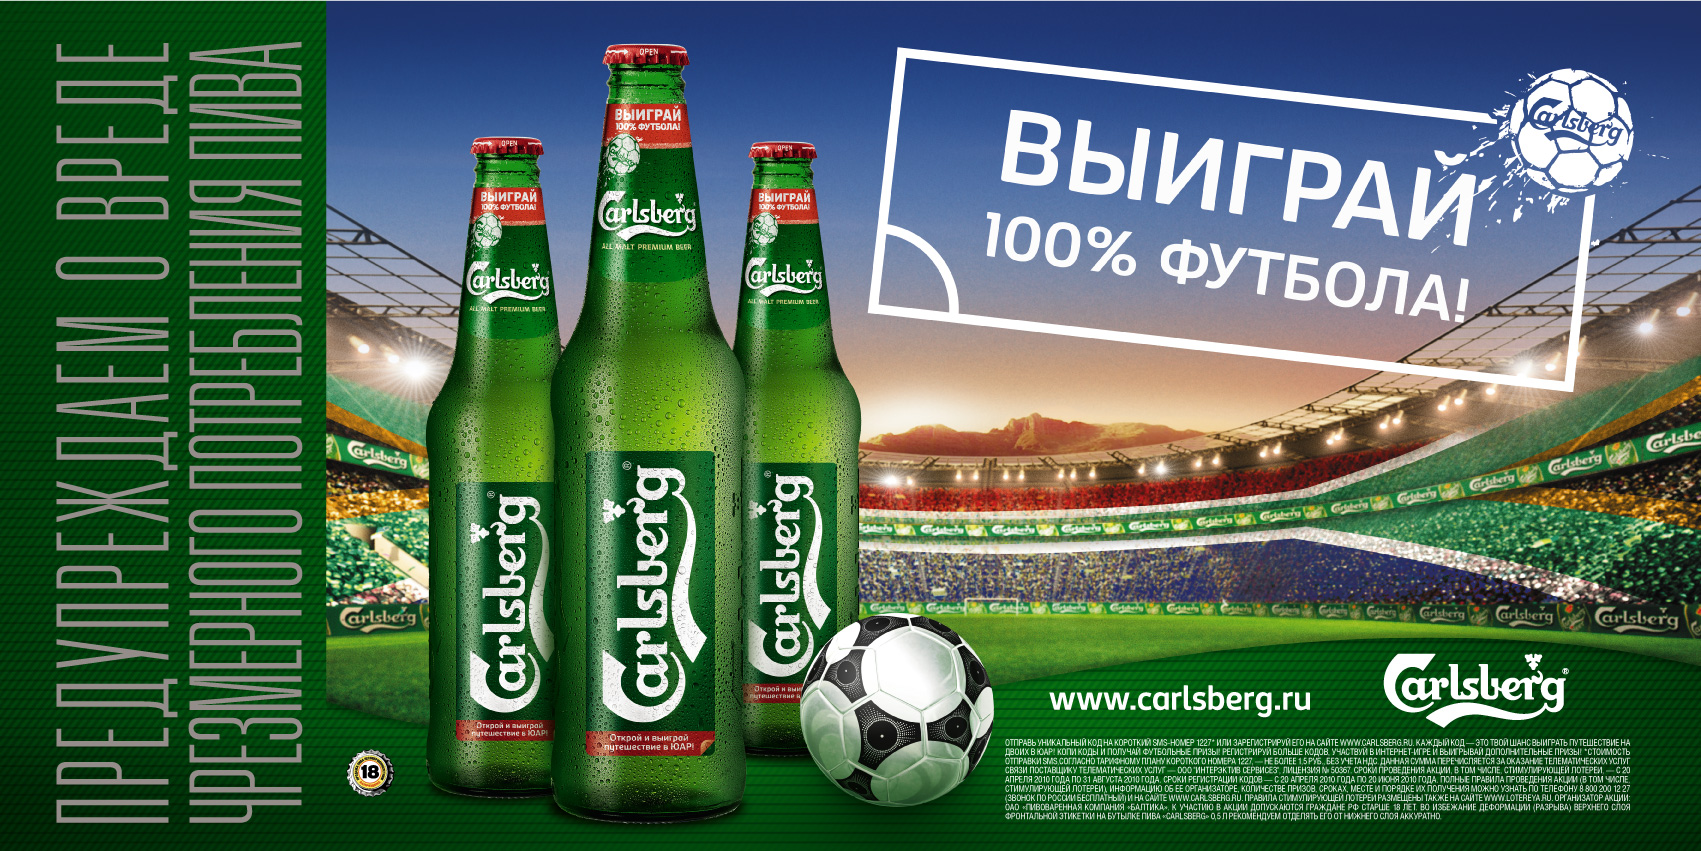 carlsberg in russia Carlsberg has once again been pulled down by its travails in russia, its biggest  market, as a large writedown and falling volumes led to the.